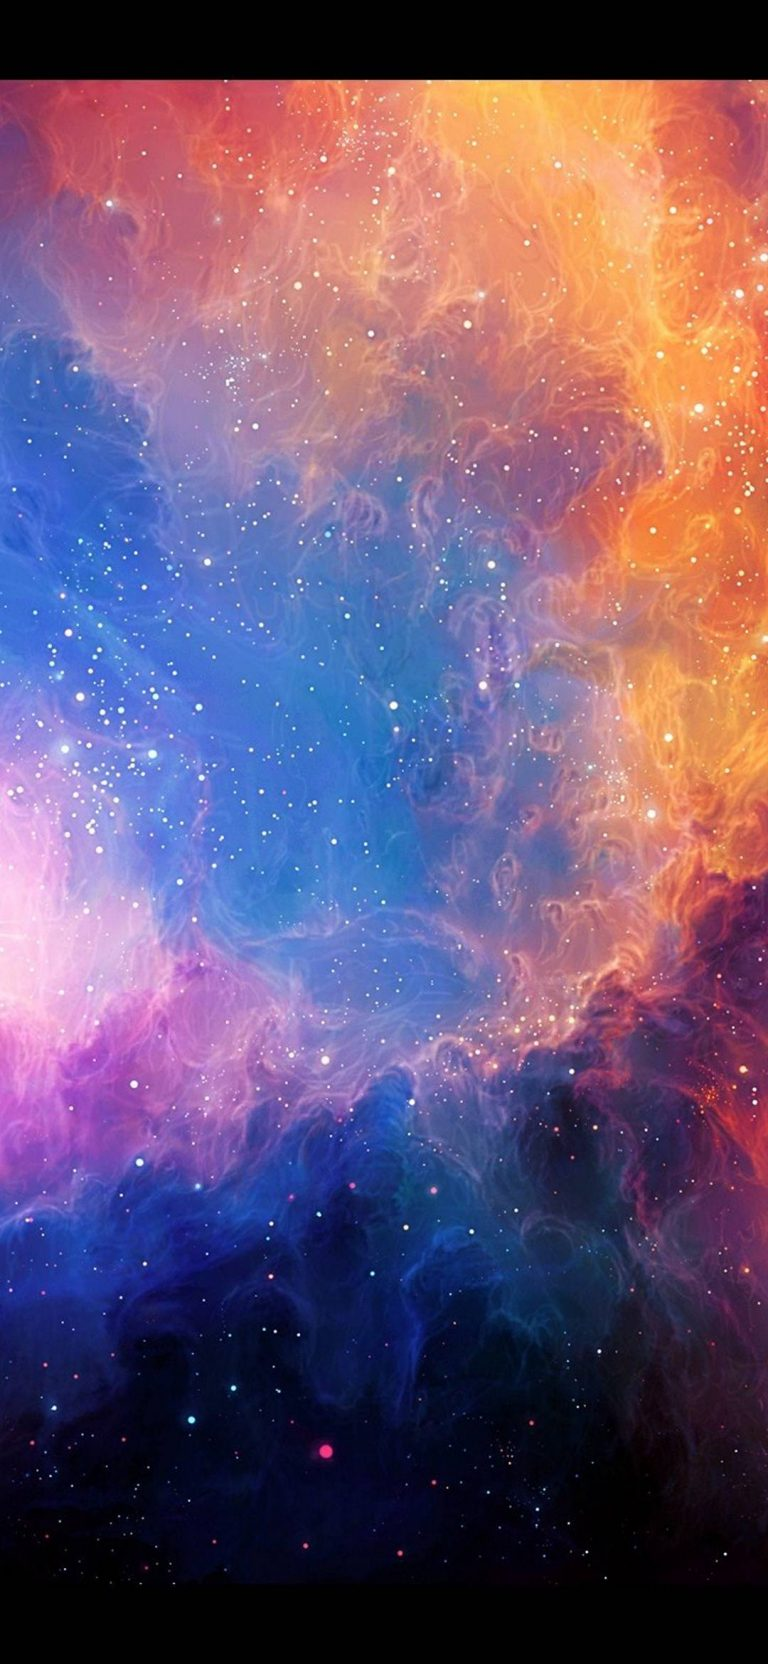 Abstract Outer Space Stars Nebulae 1080x2340 768x1664